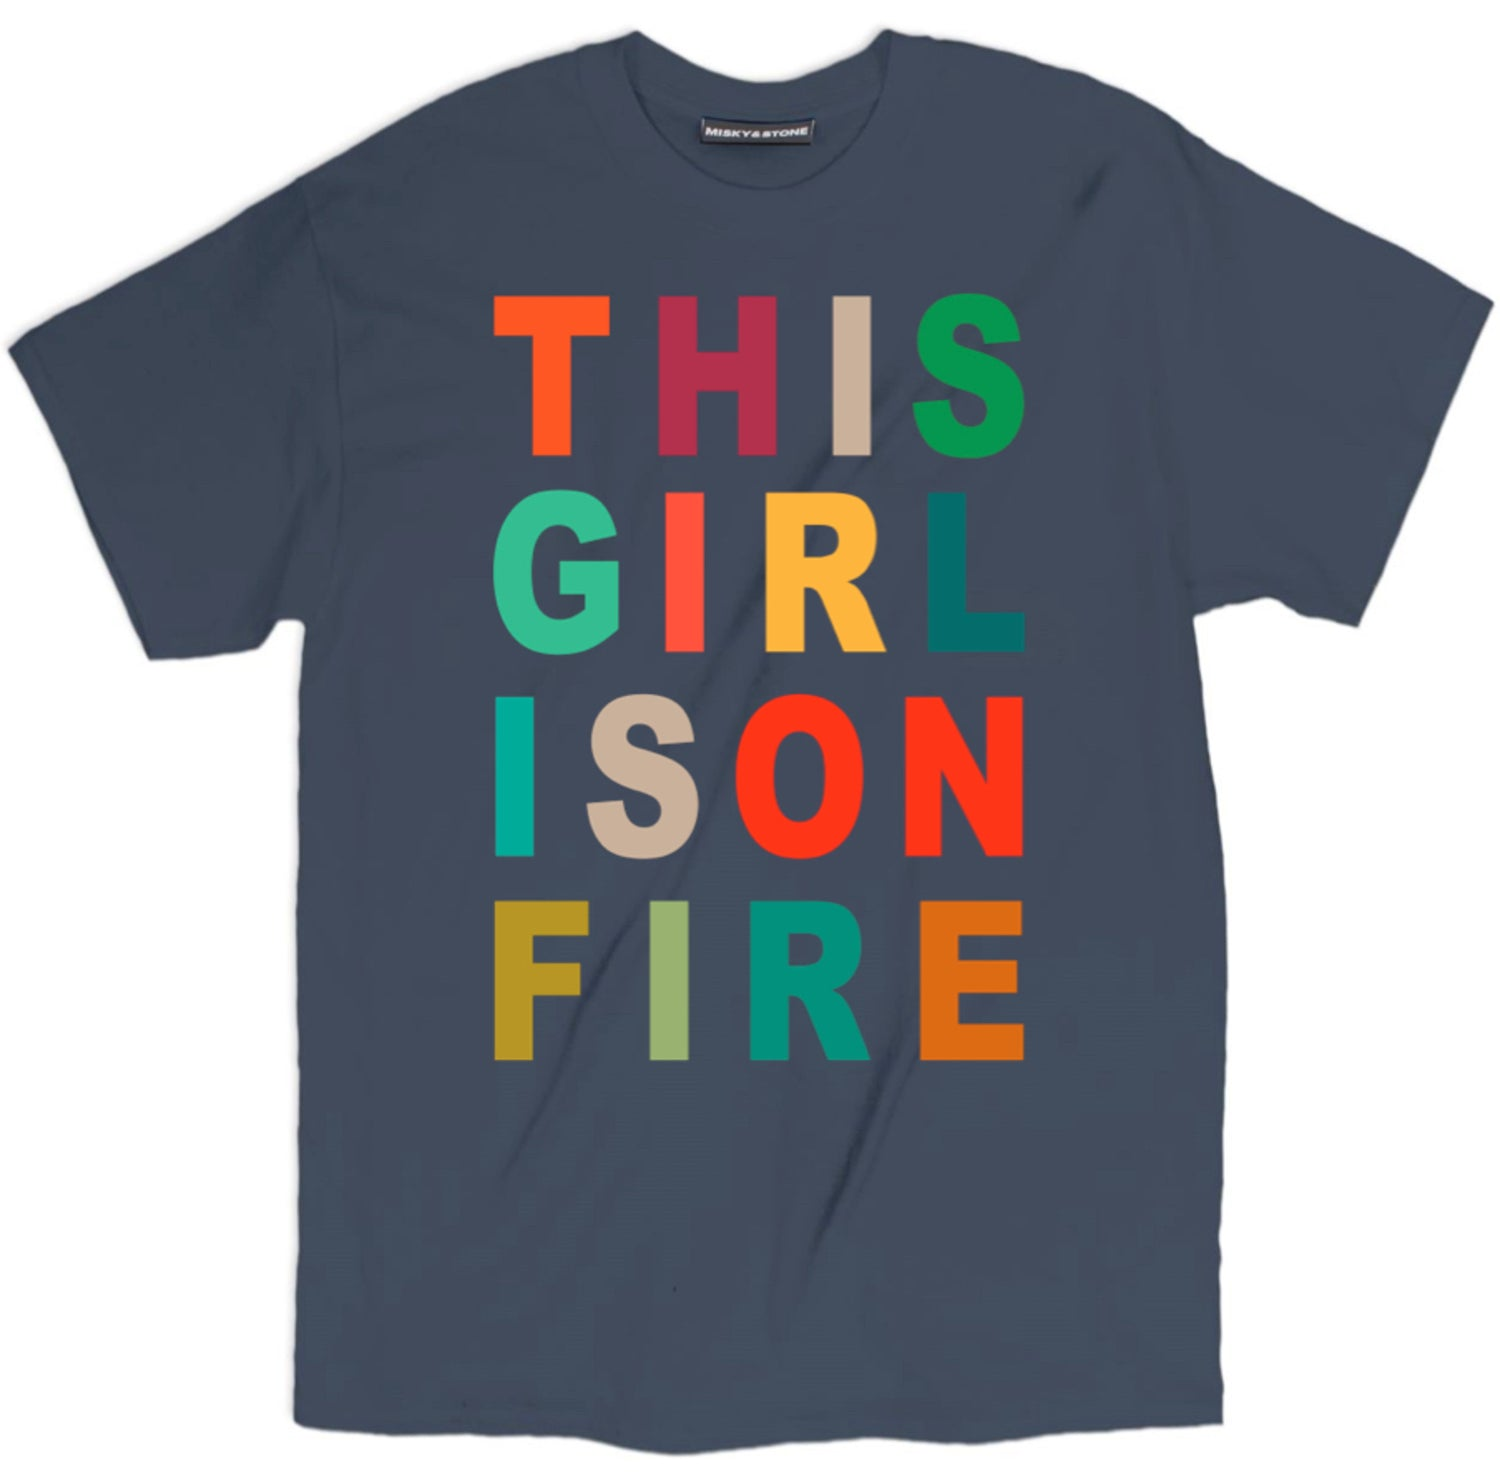 girl on fire shirt, alicia keys shirts, alicia keys t shirts, alicia keys merch, alicia keys apparel, alicia keys clothing,